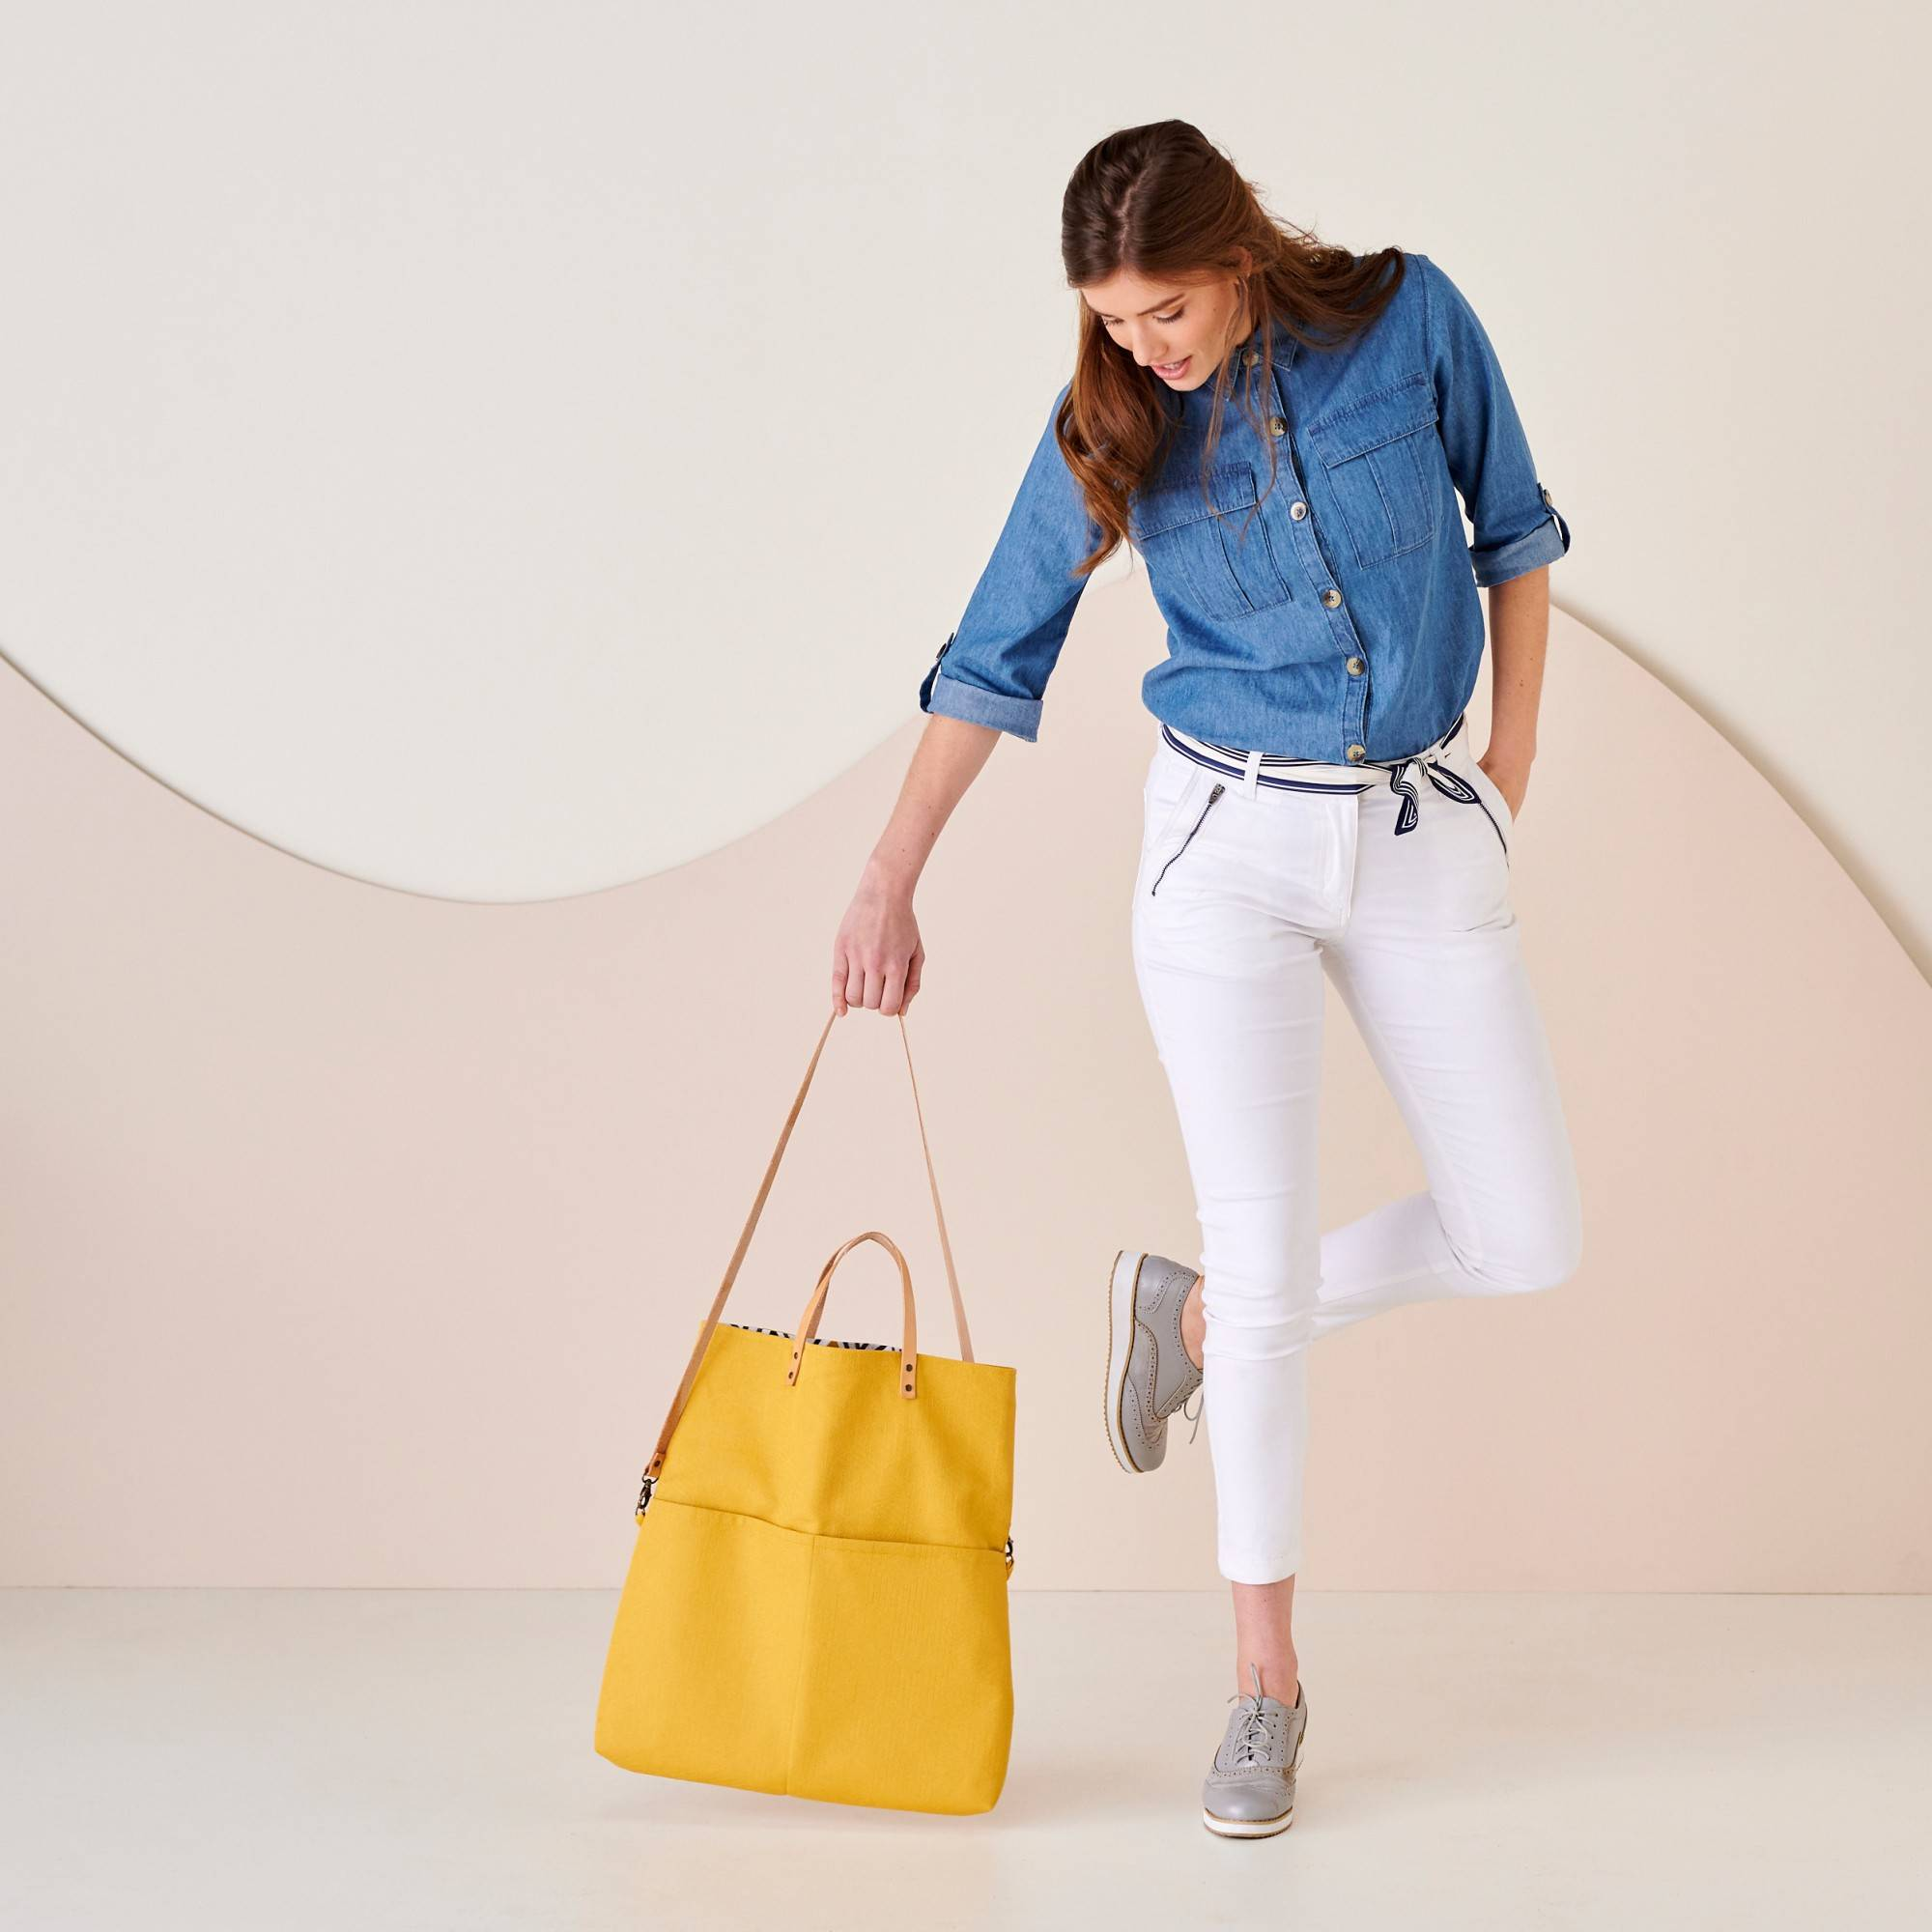 Sac shopping transformable en besace, fabrication éco-responsable - Blancheporte